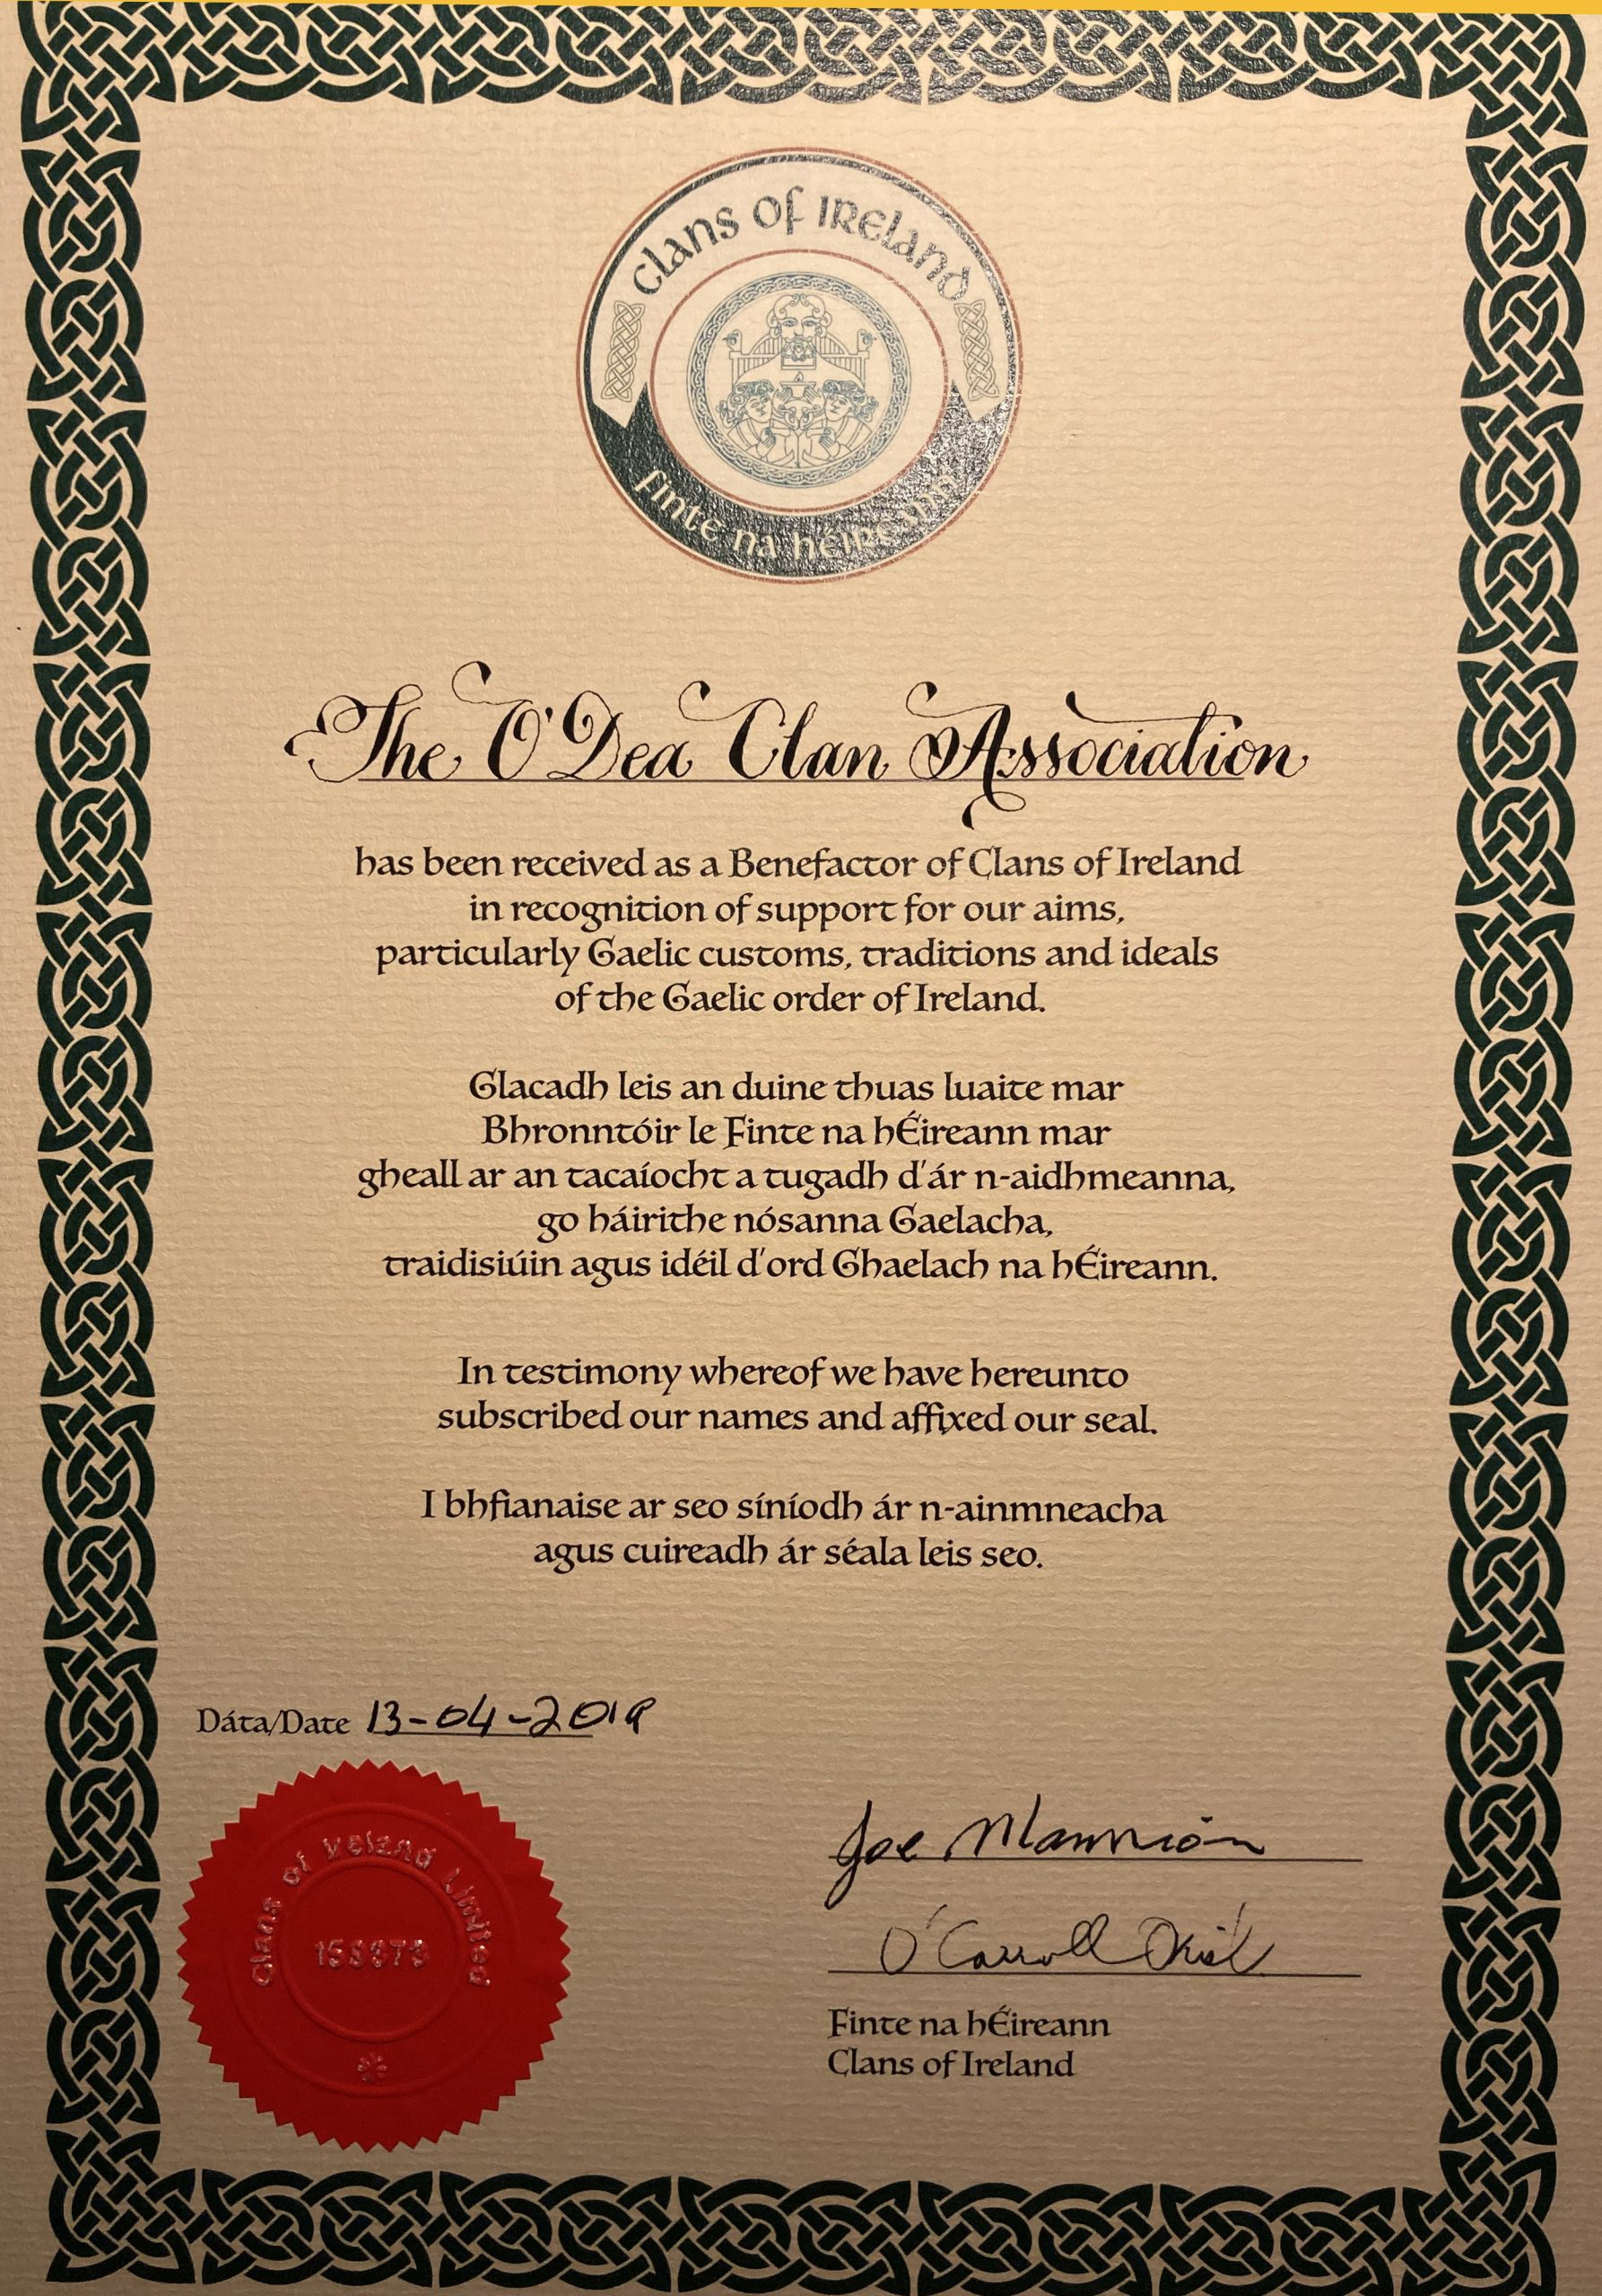 The O'Dea Clan is a Benefactor of the Clans of Ireland